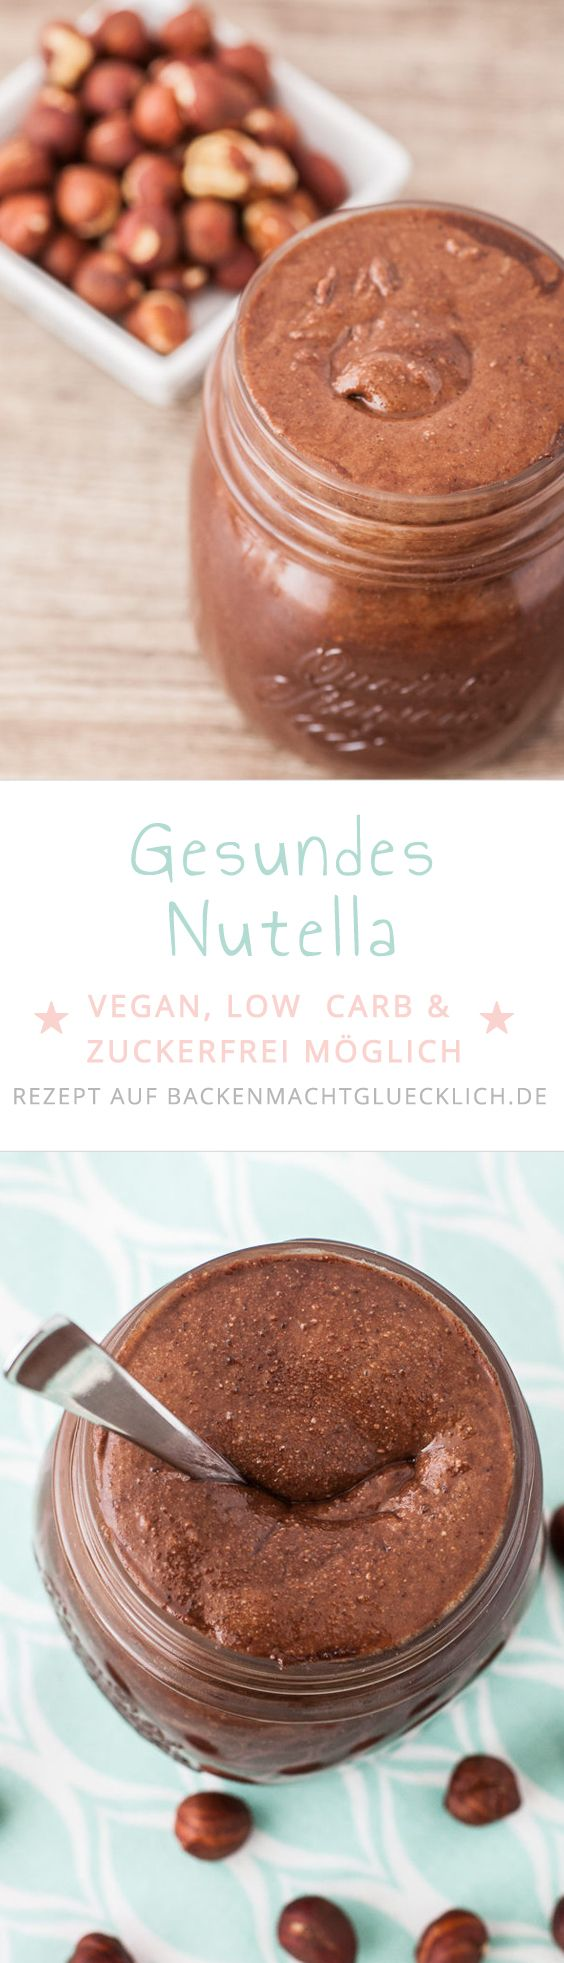 Selbstgemachtes Nutella